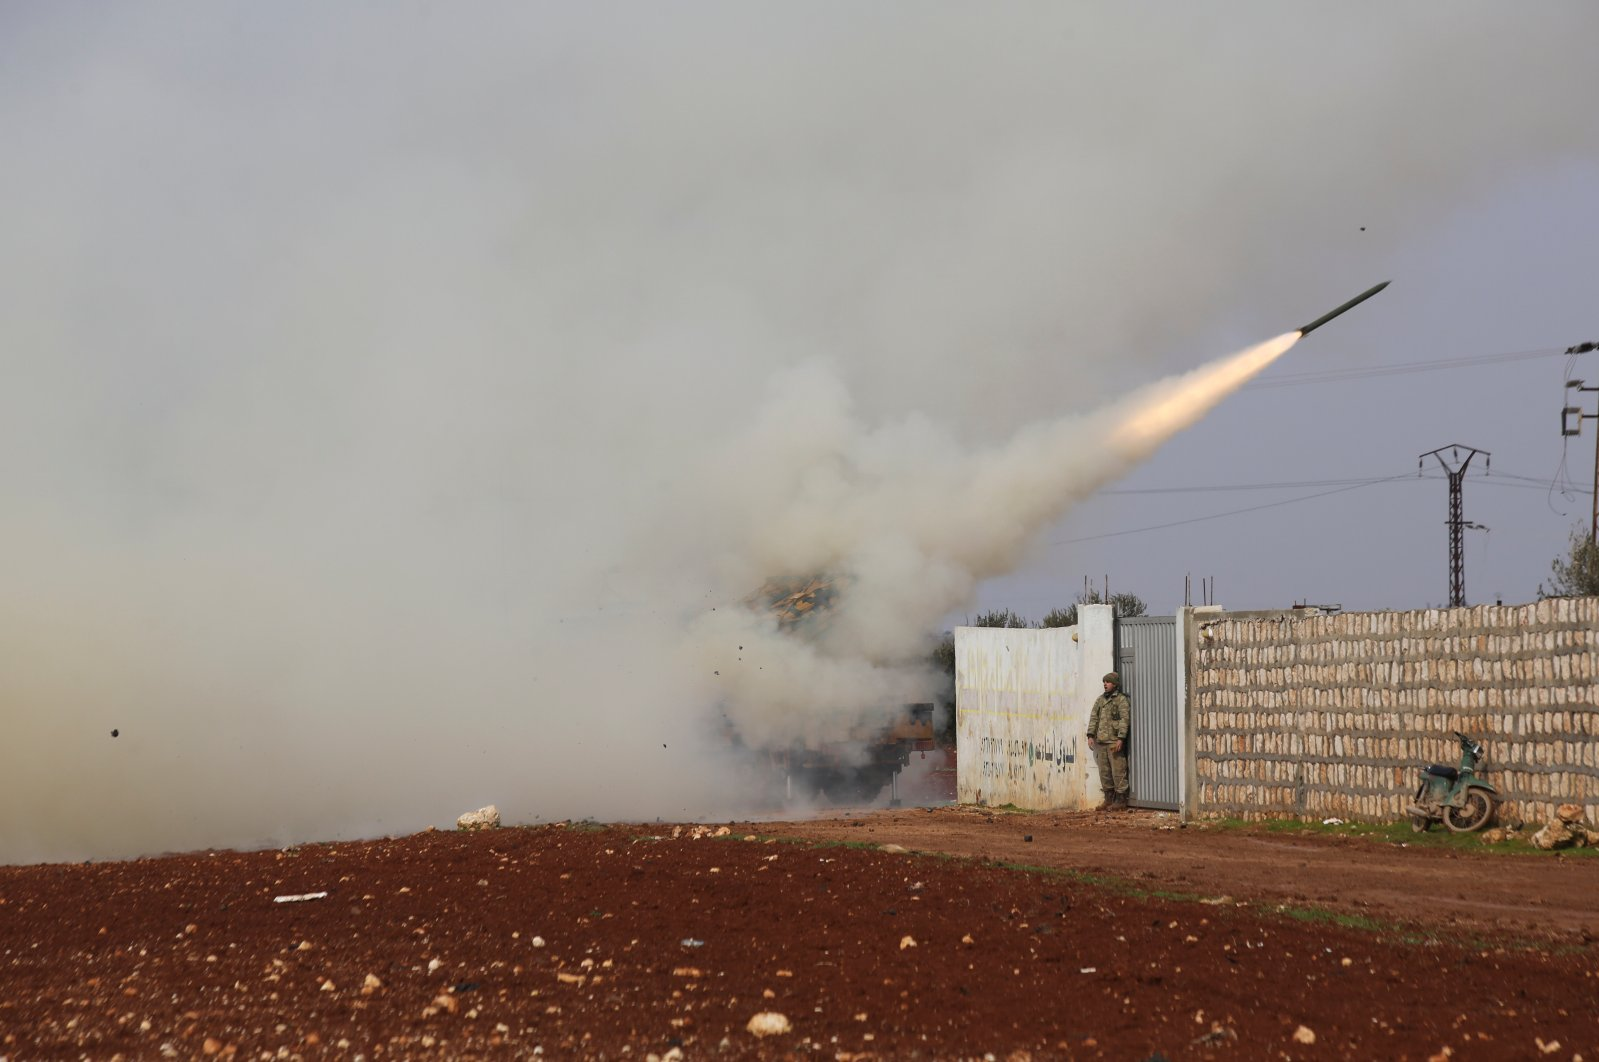 Turkish soldiers fire a missile at Assad regime position in the province of Idlib, Syria, Friday, Feb. 14, 2020. (AP Photo)